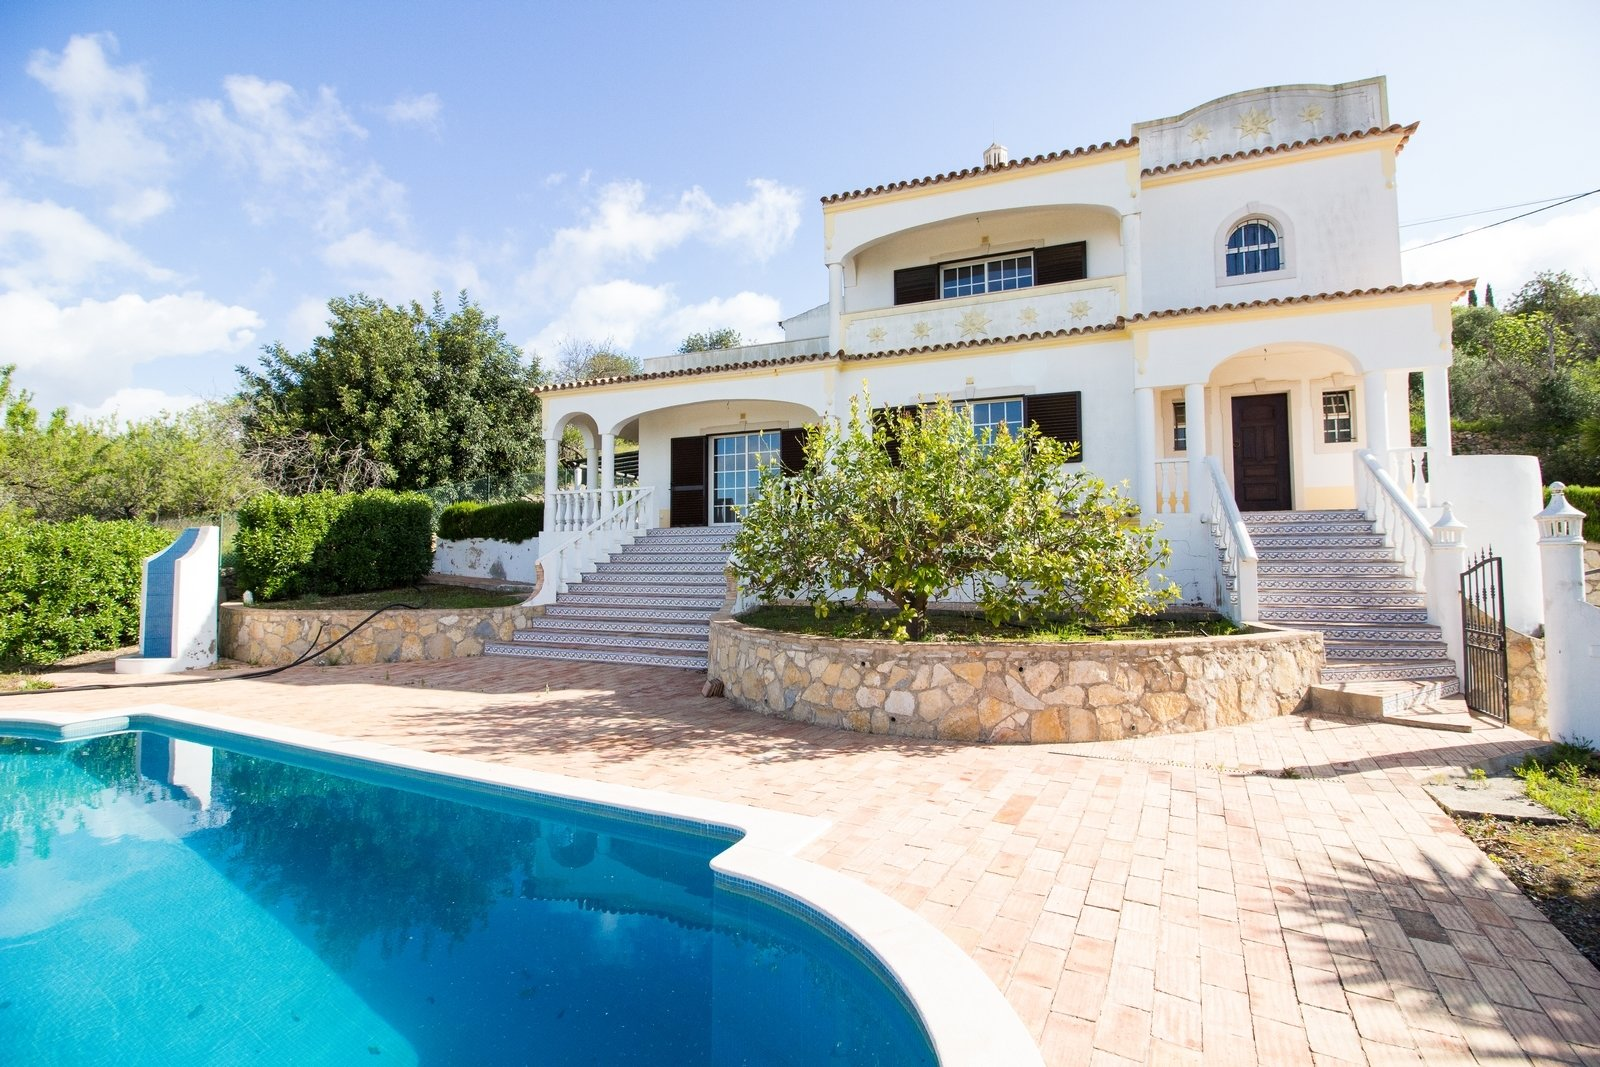 4 Bedroom Villa Boliqueime, Central Algarve Ref: PV3347